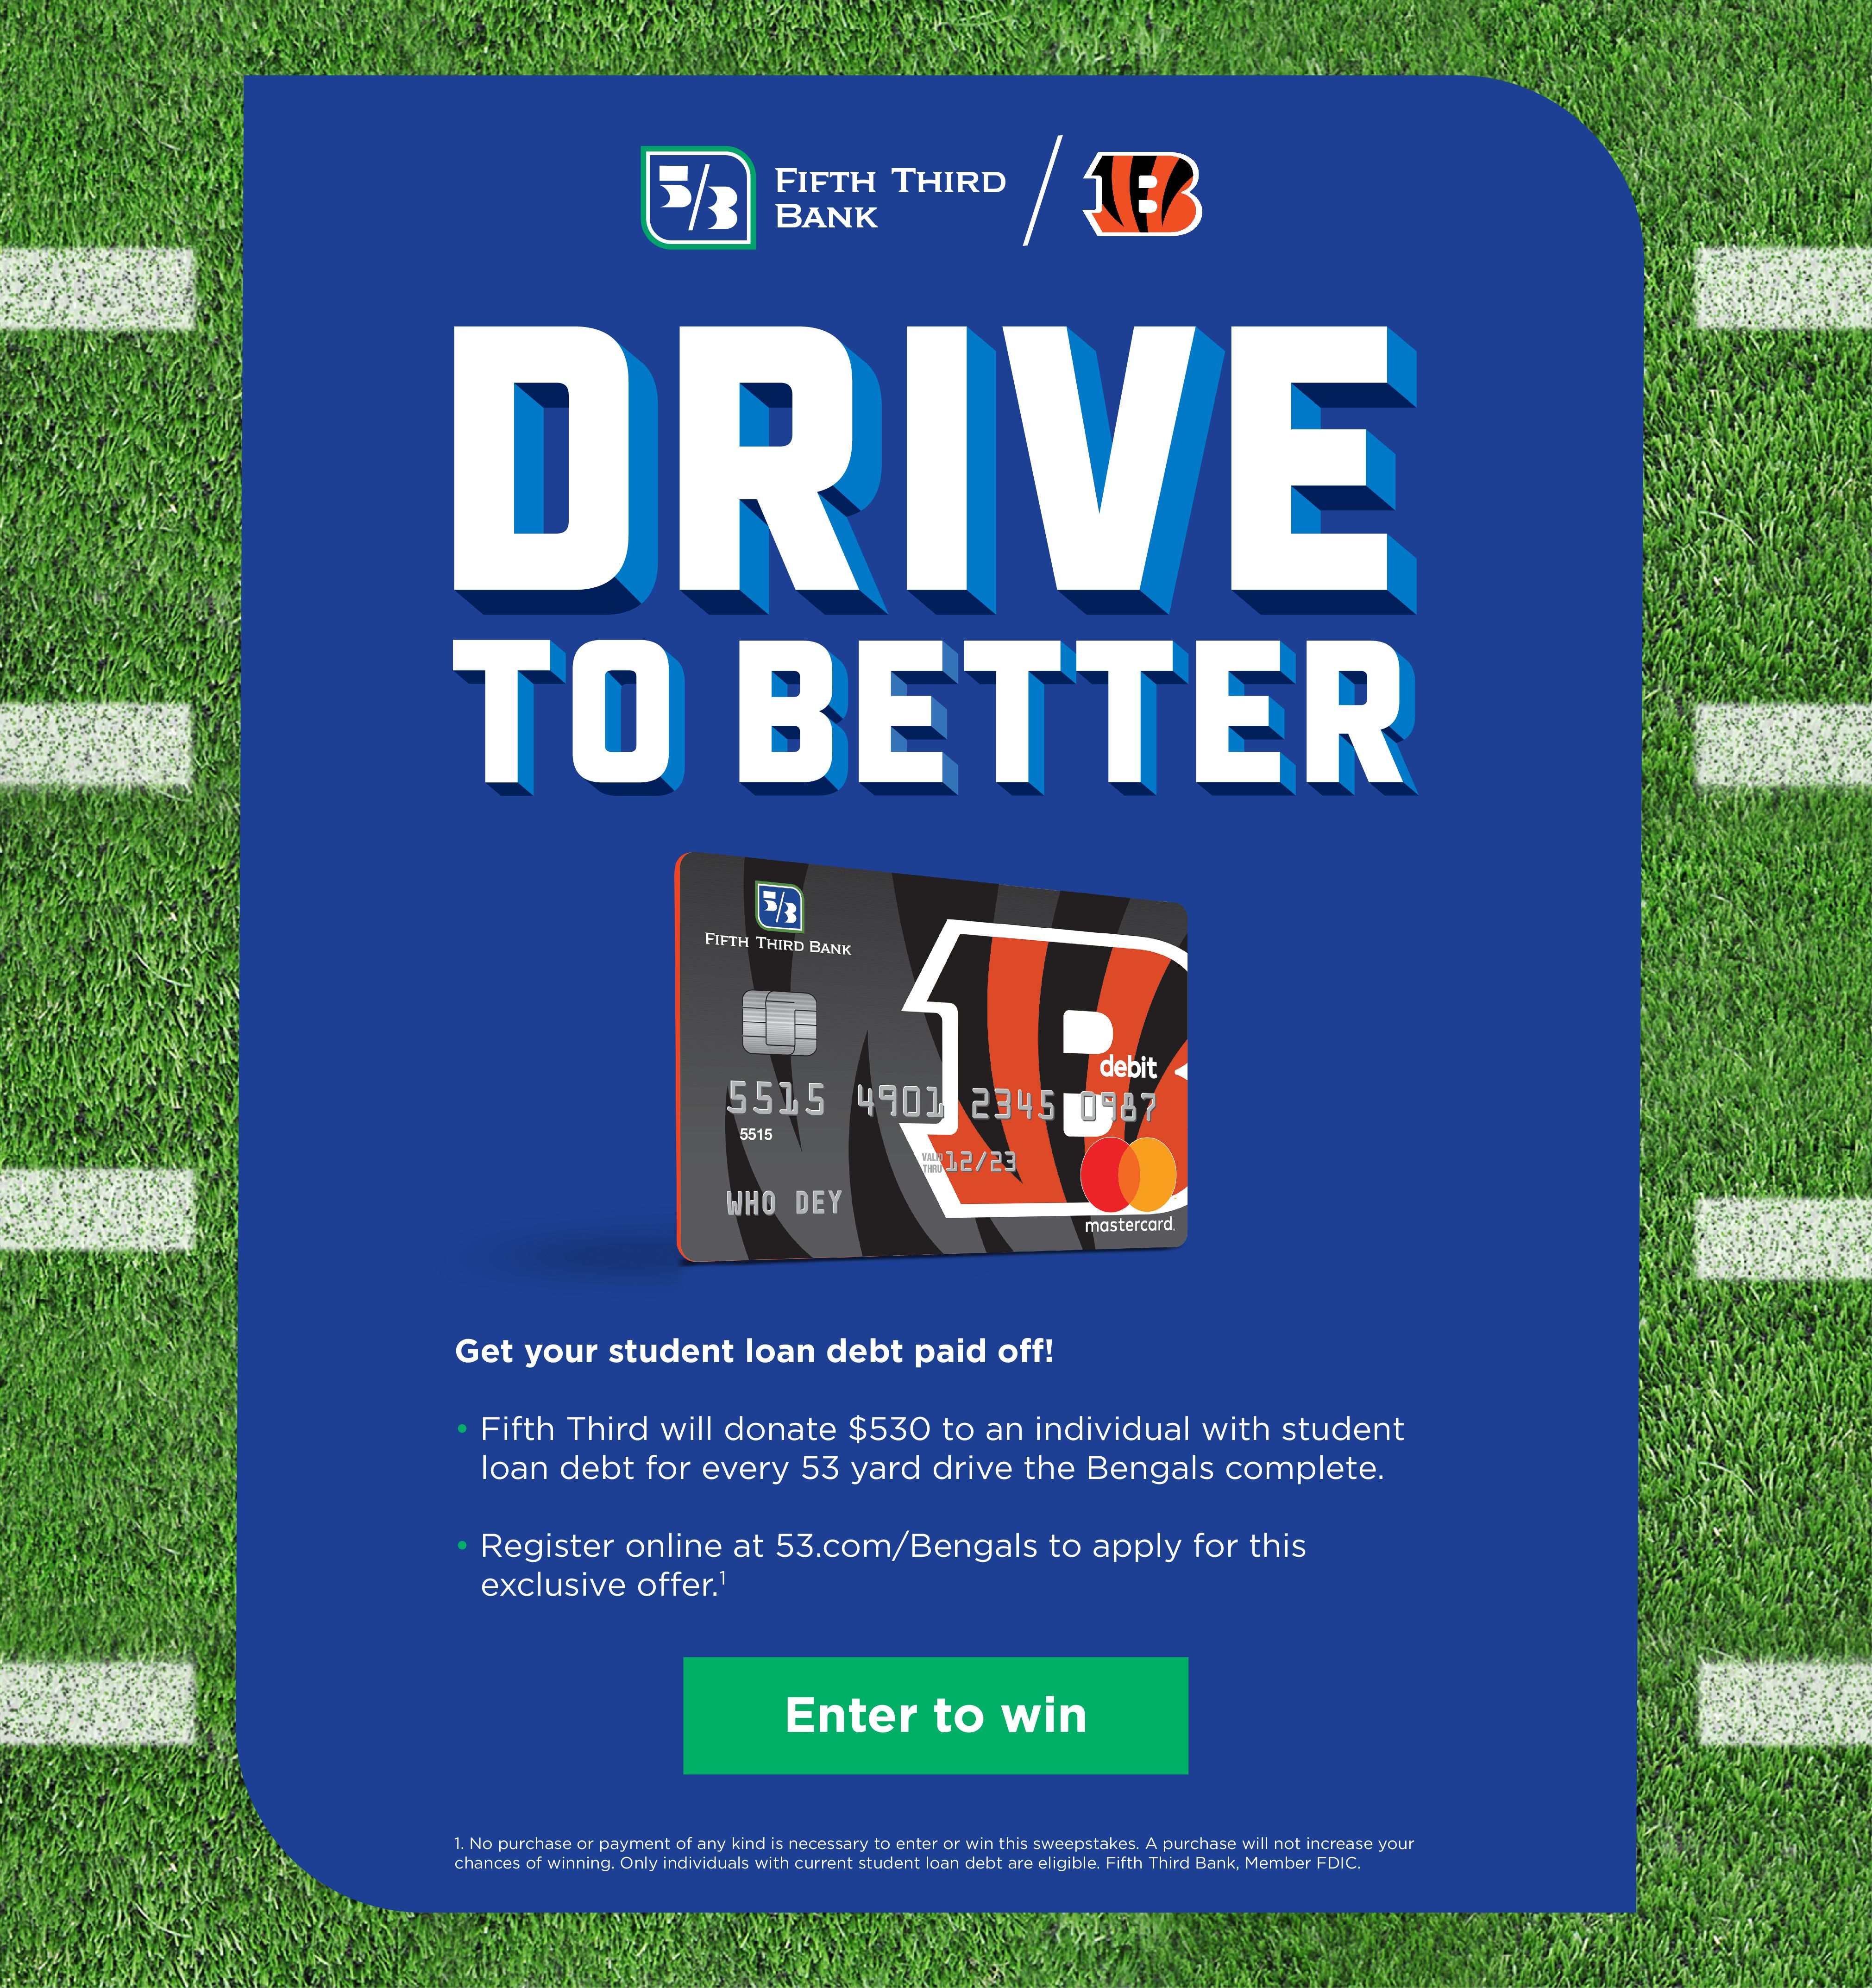 Sign up for Bengals Banking today and receive a Bengals branded debit card.  Plus get exclusive Who Dey Perks!